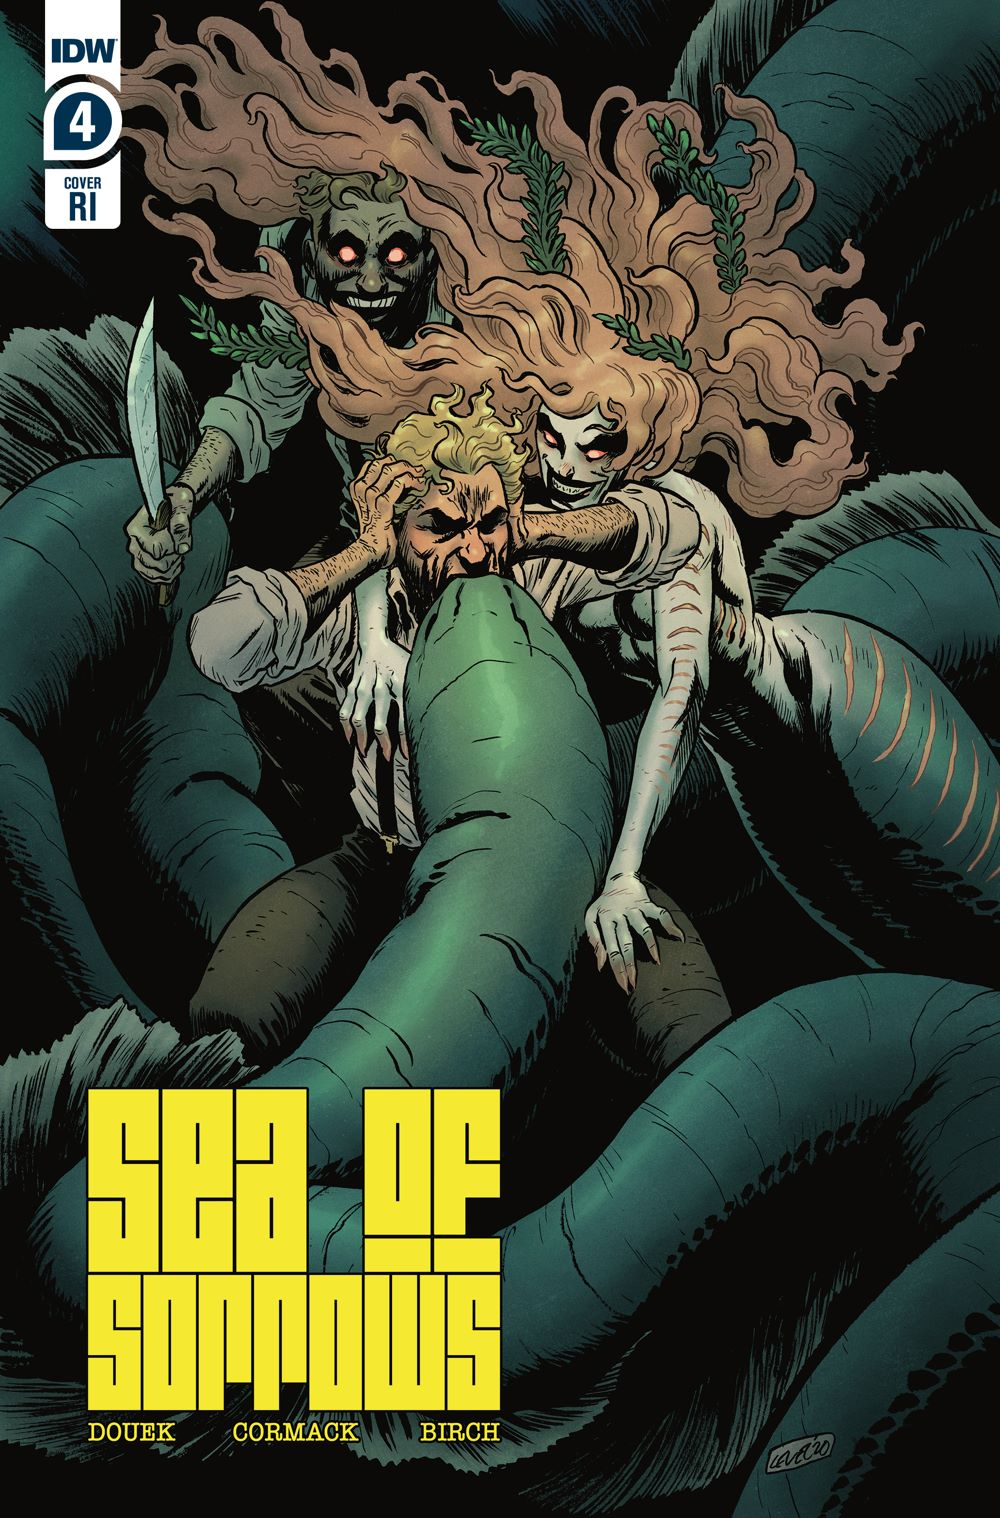 SeaofSorrow_04-RIcvredit ComicList: IDW Publishing New Releases for 03/31/2021